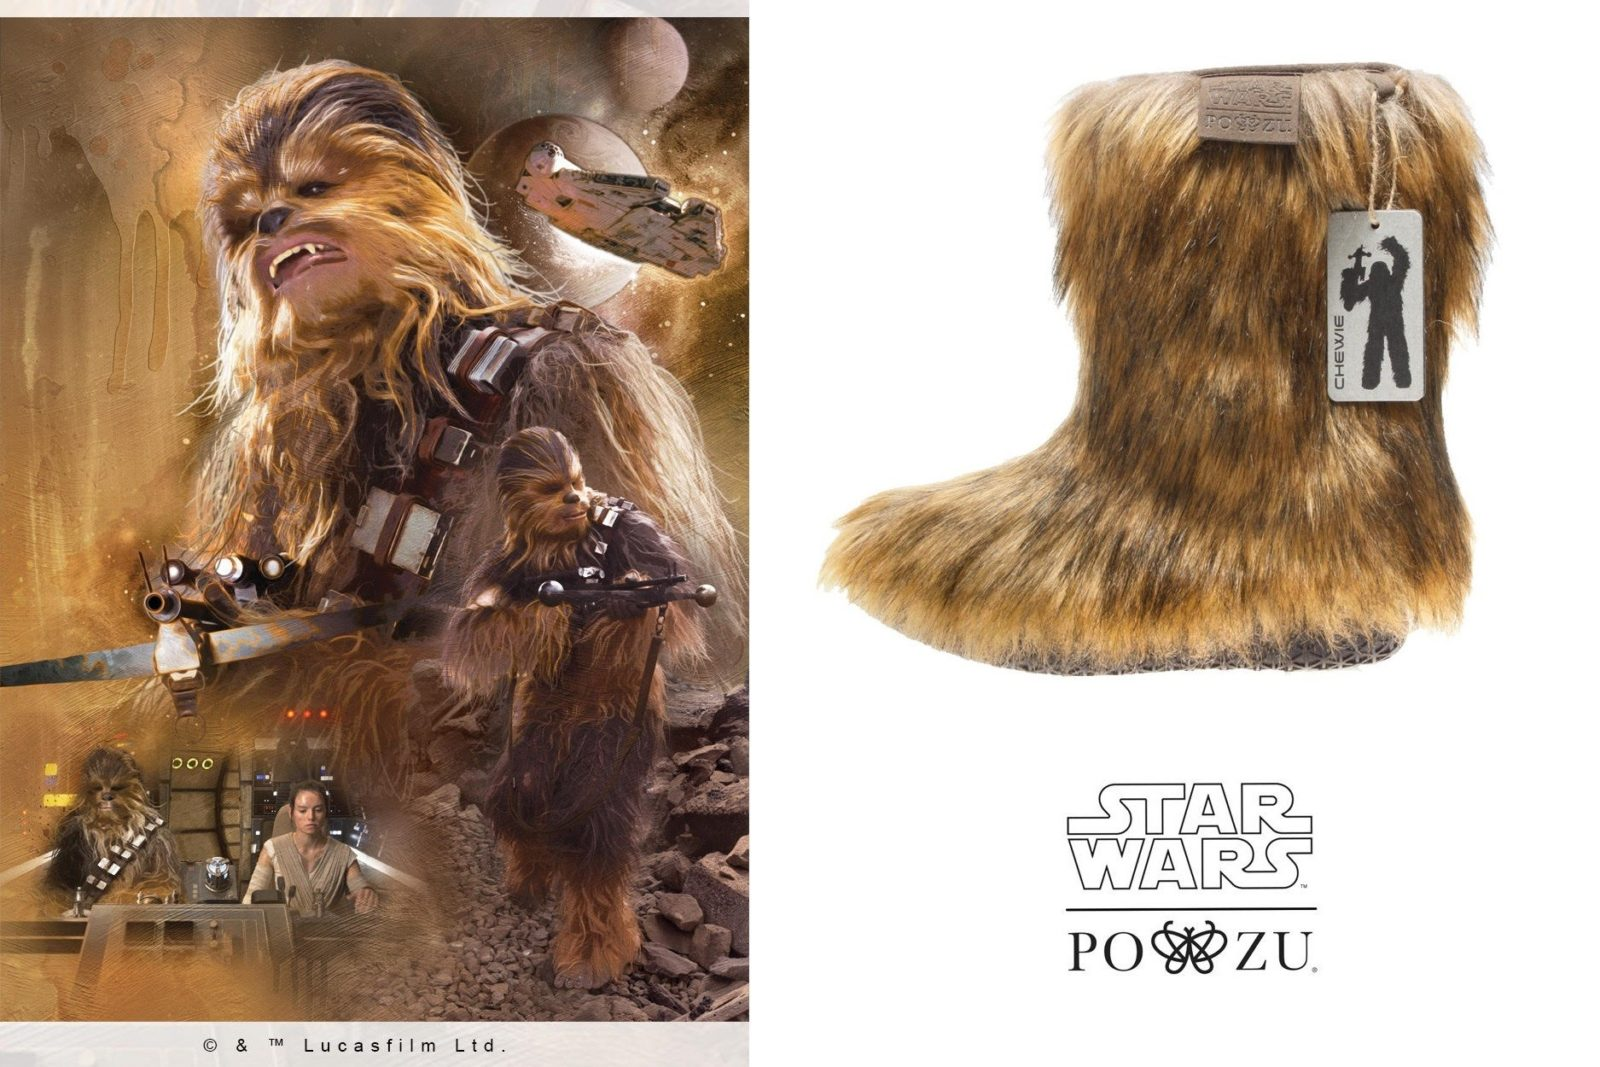 New Po-Zu x Star Wars Chewie boot preview!